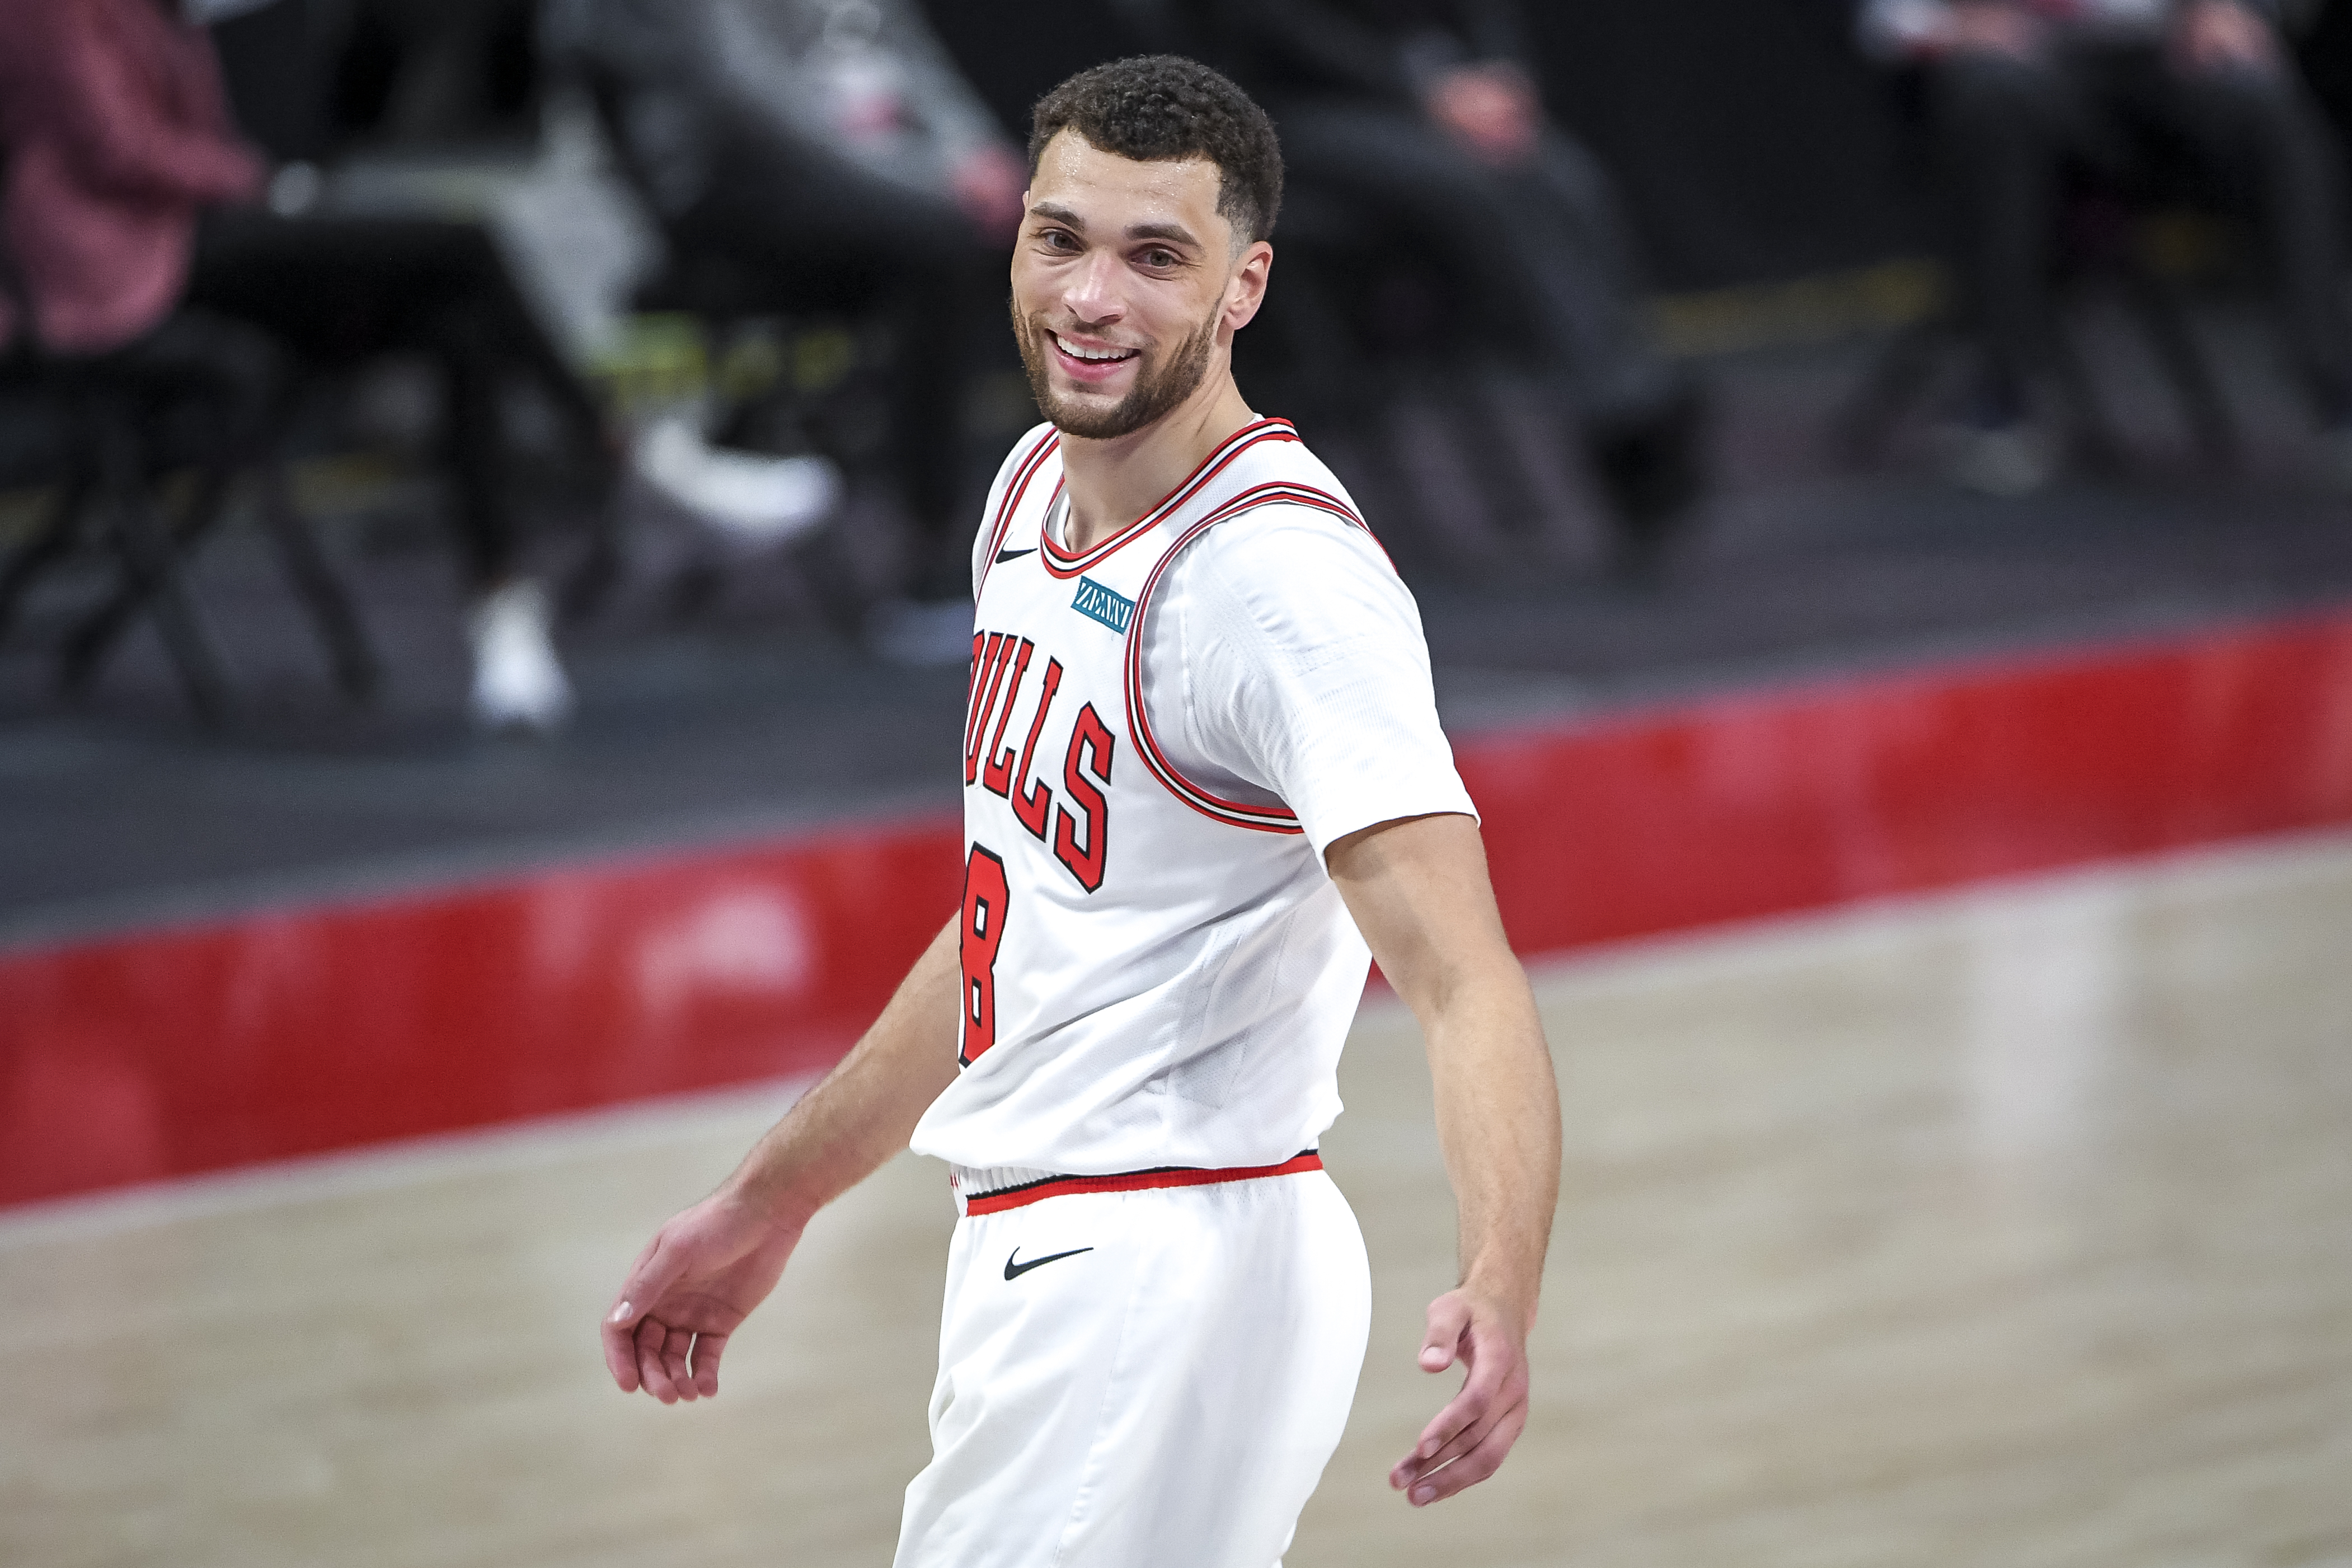 Zach LaVine of the Chicago Bulls smiles during the second quarter of the NBA game against the Detroit Pistons at Little Caesars Arena on May 09, 2021 in Detroit, Michigan.